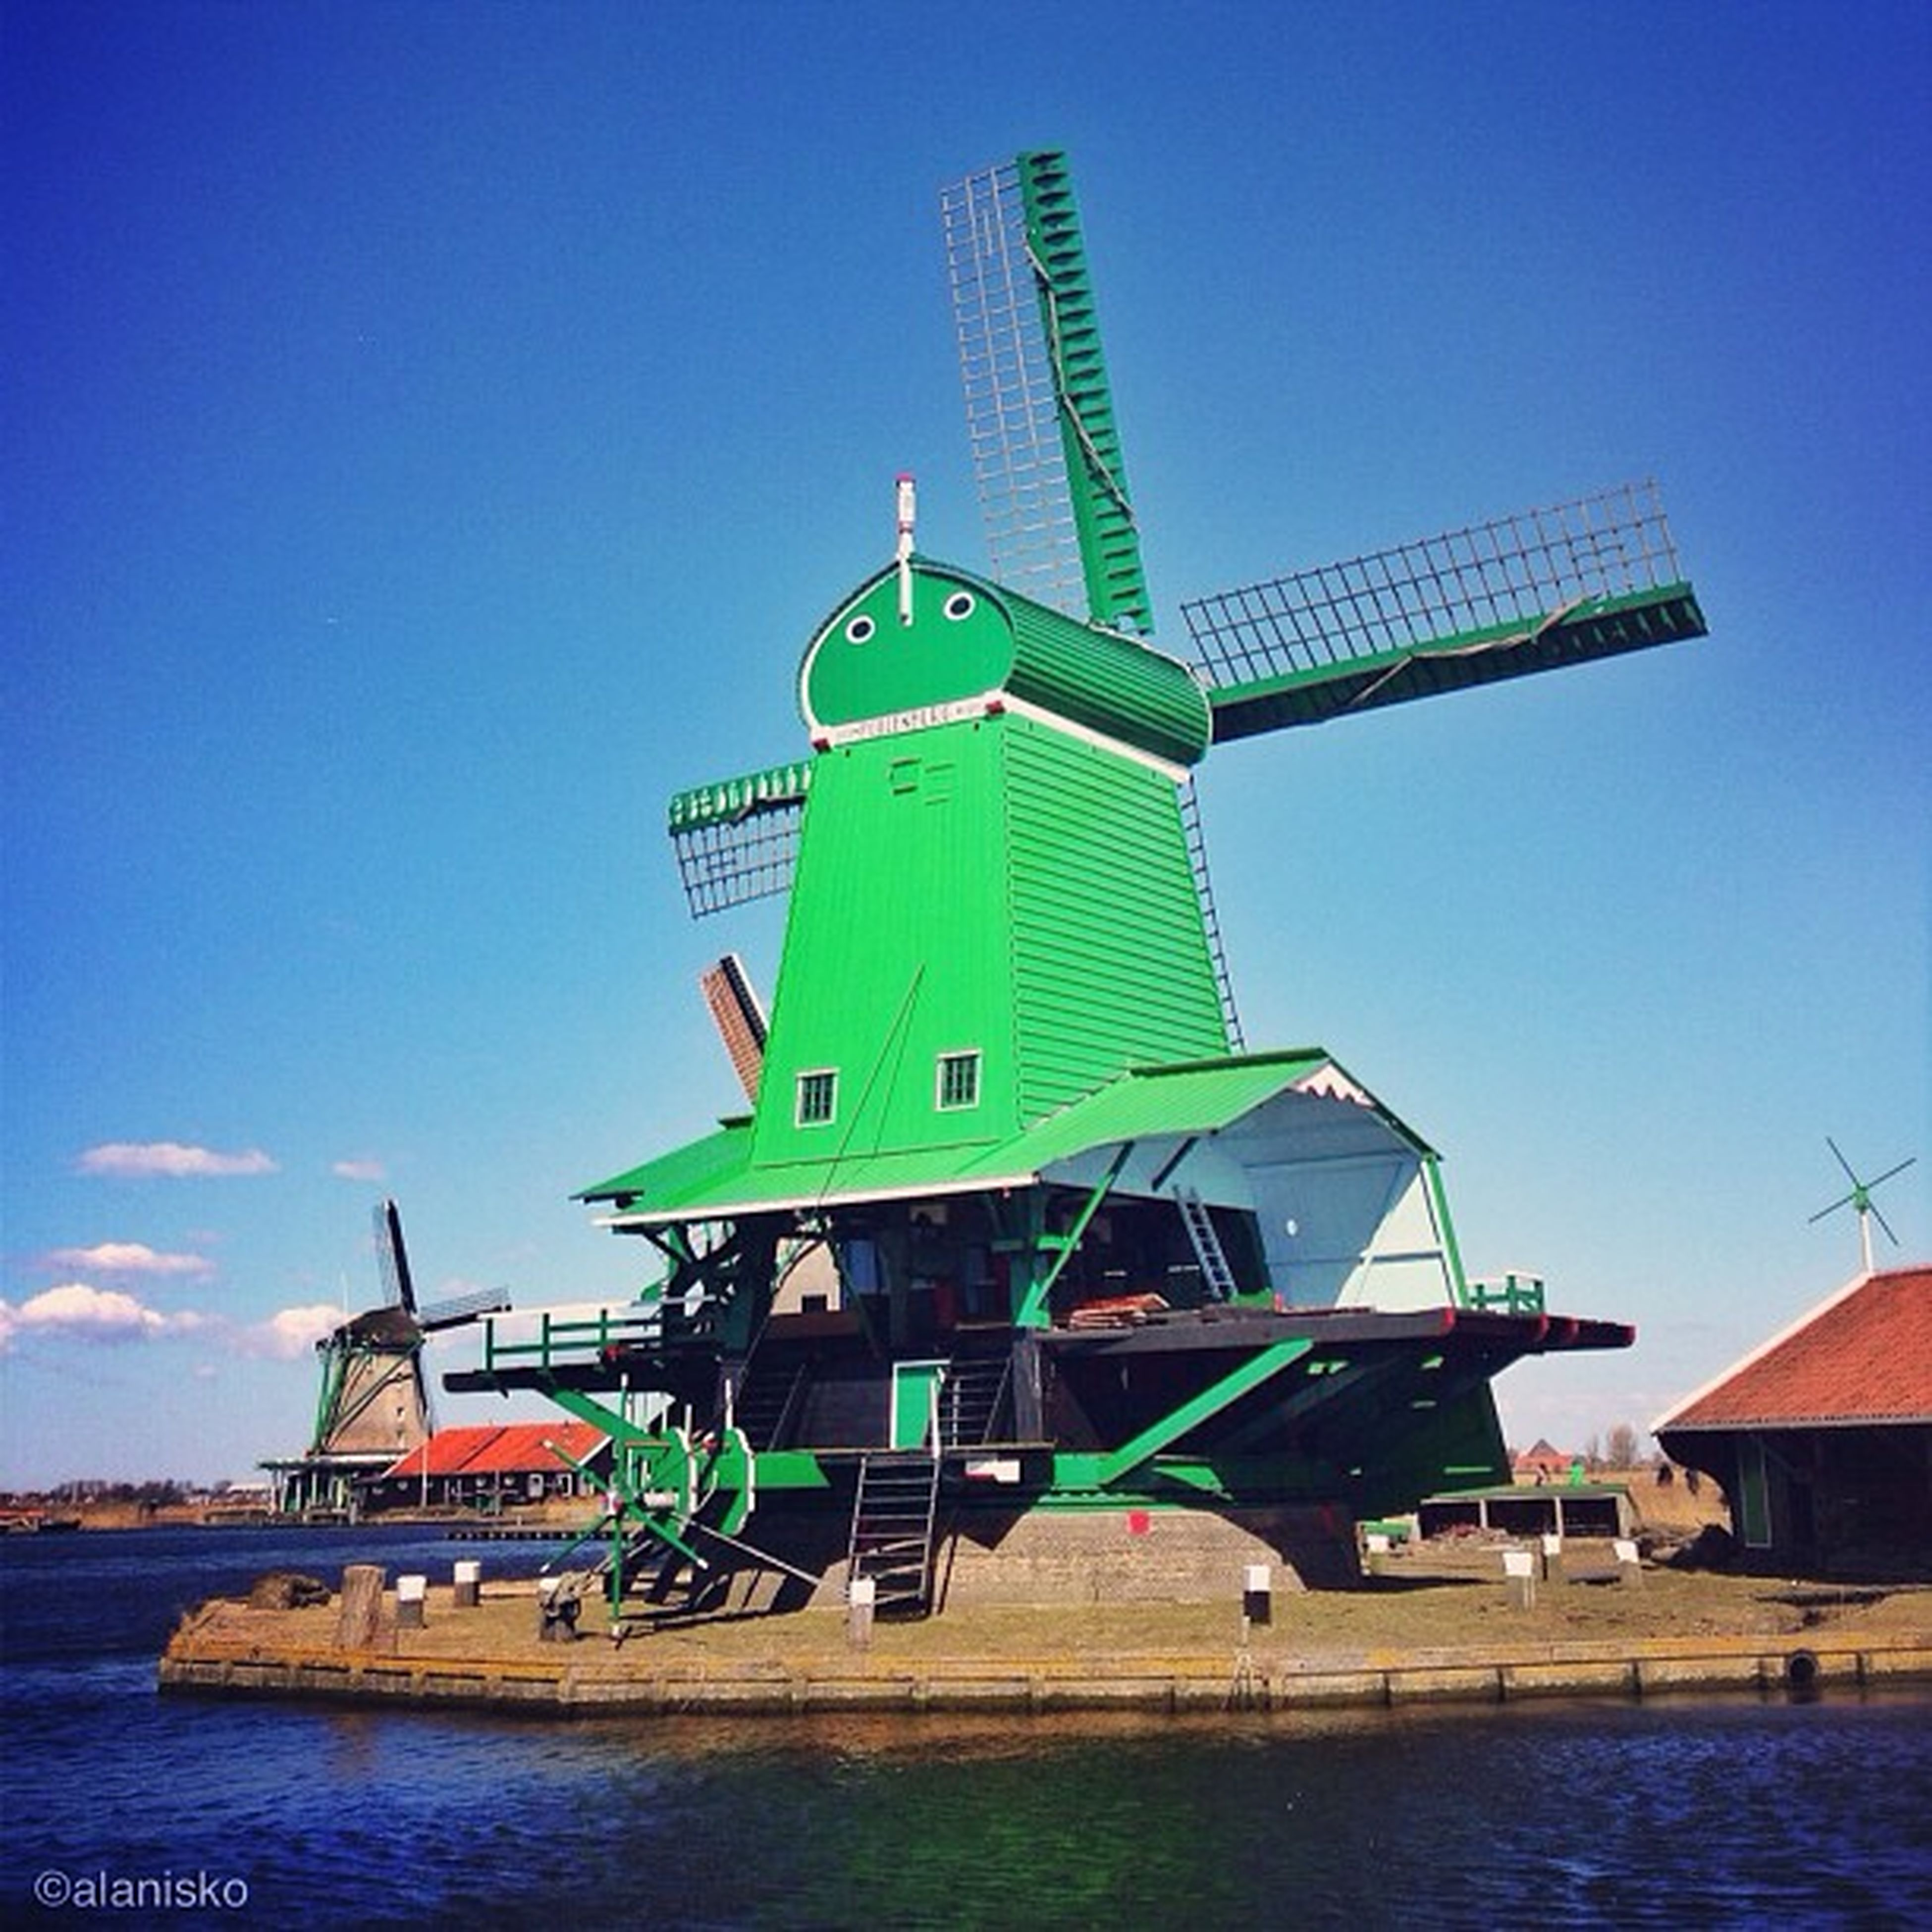 water, clear sky, blue, built structure, waterfront, architecture, copy space, building exterior, sea, transportation, lake, crane - construction machinery, industry, river, day, traditional windmill, nautical vessel, outdoors, harbor, renewable energy